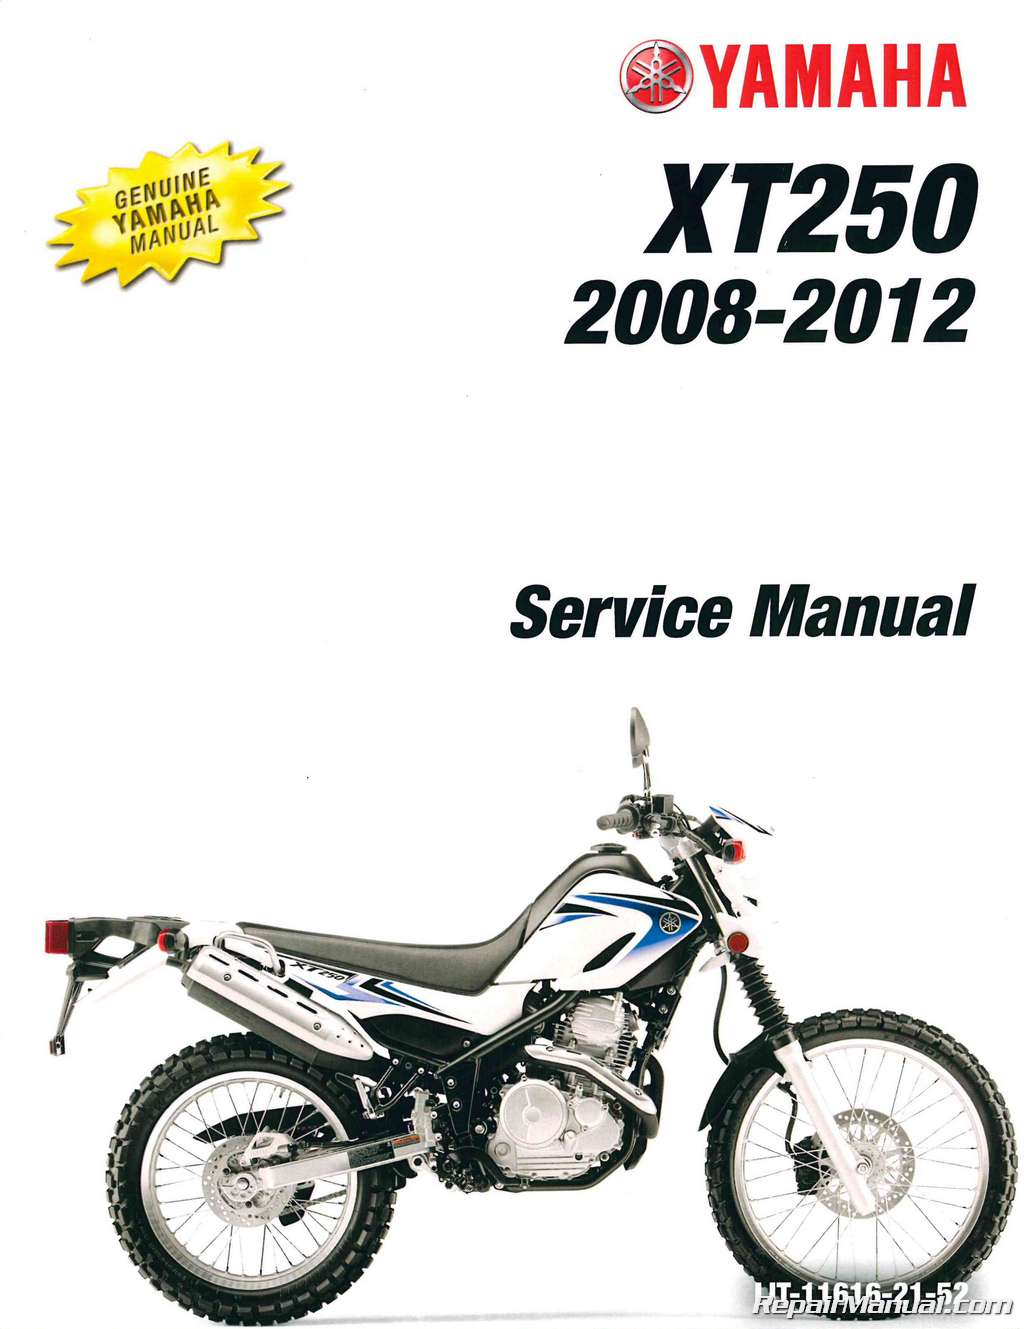 2008 2012 yamaha xt250 motorcycle service manual. Black Bedroom Furniture Sets. Home Design Ideas